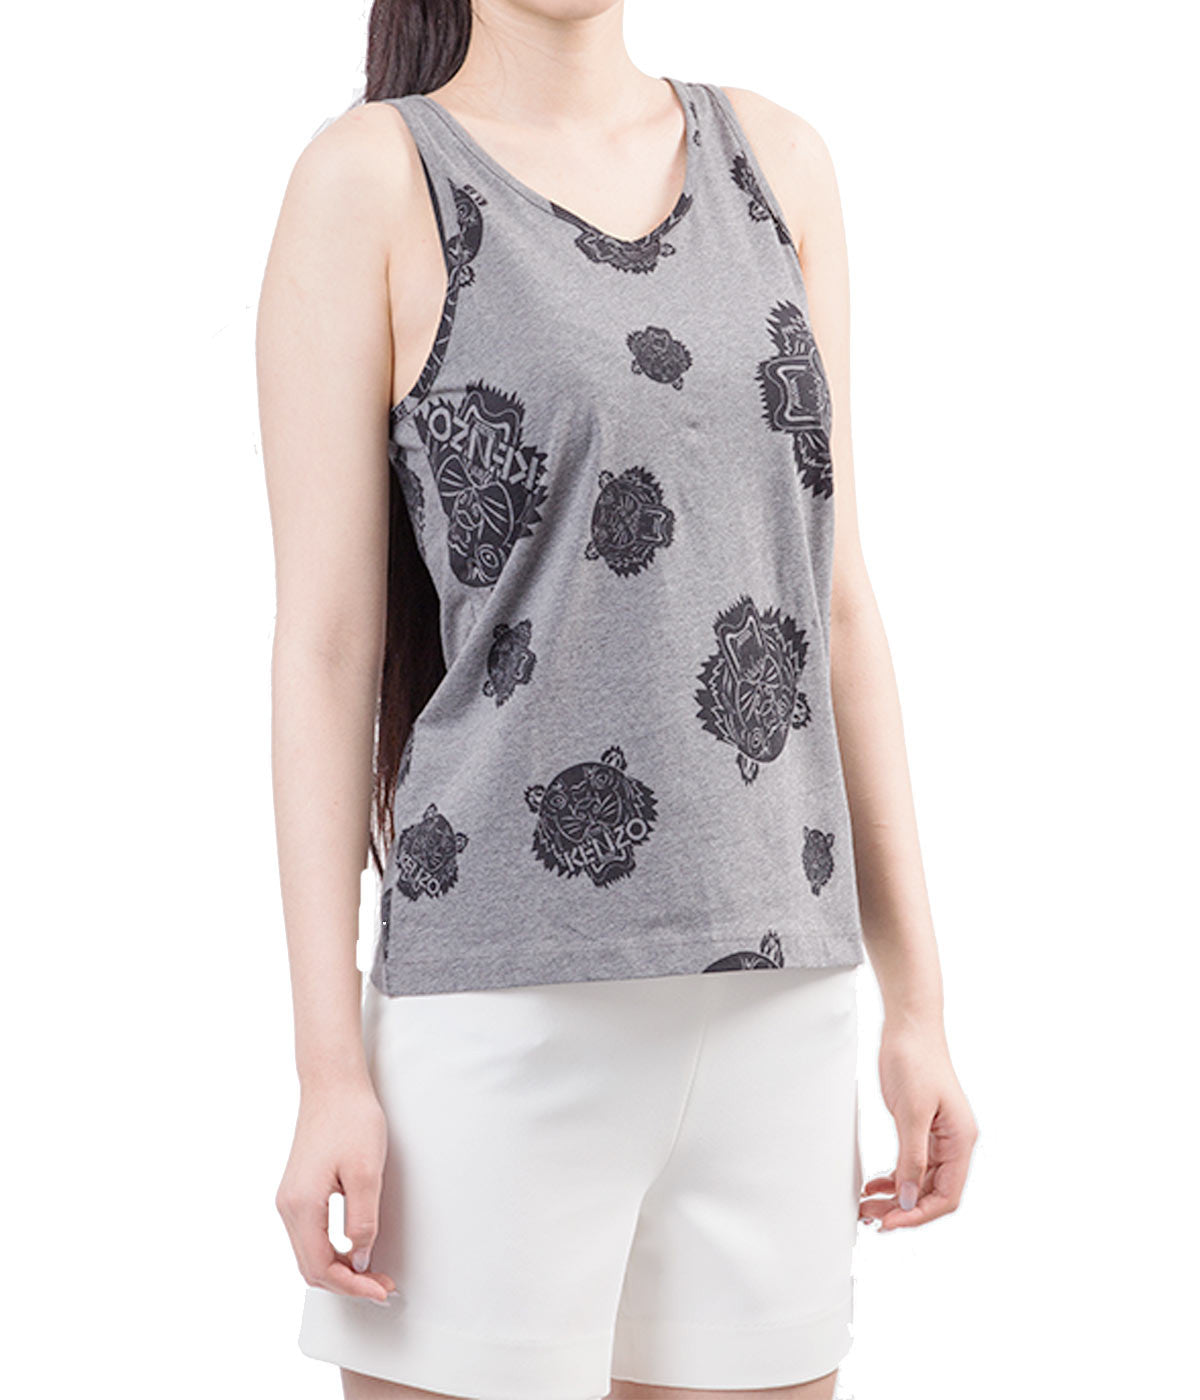 All-Over Print Tank Top